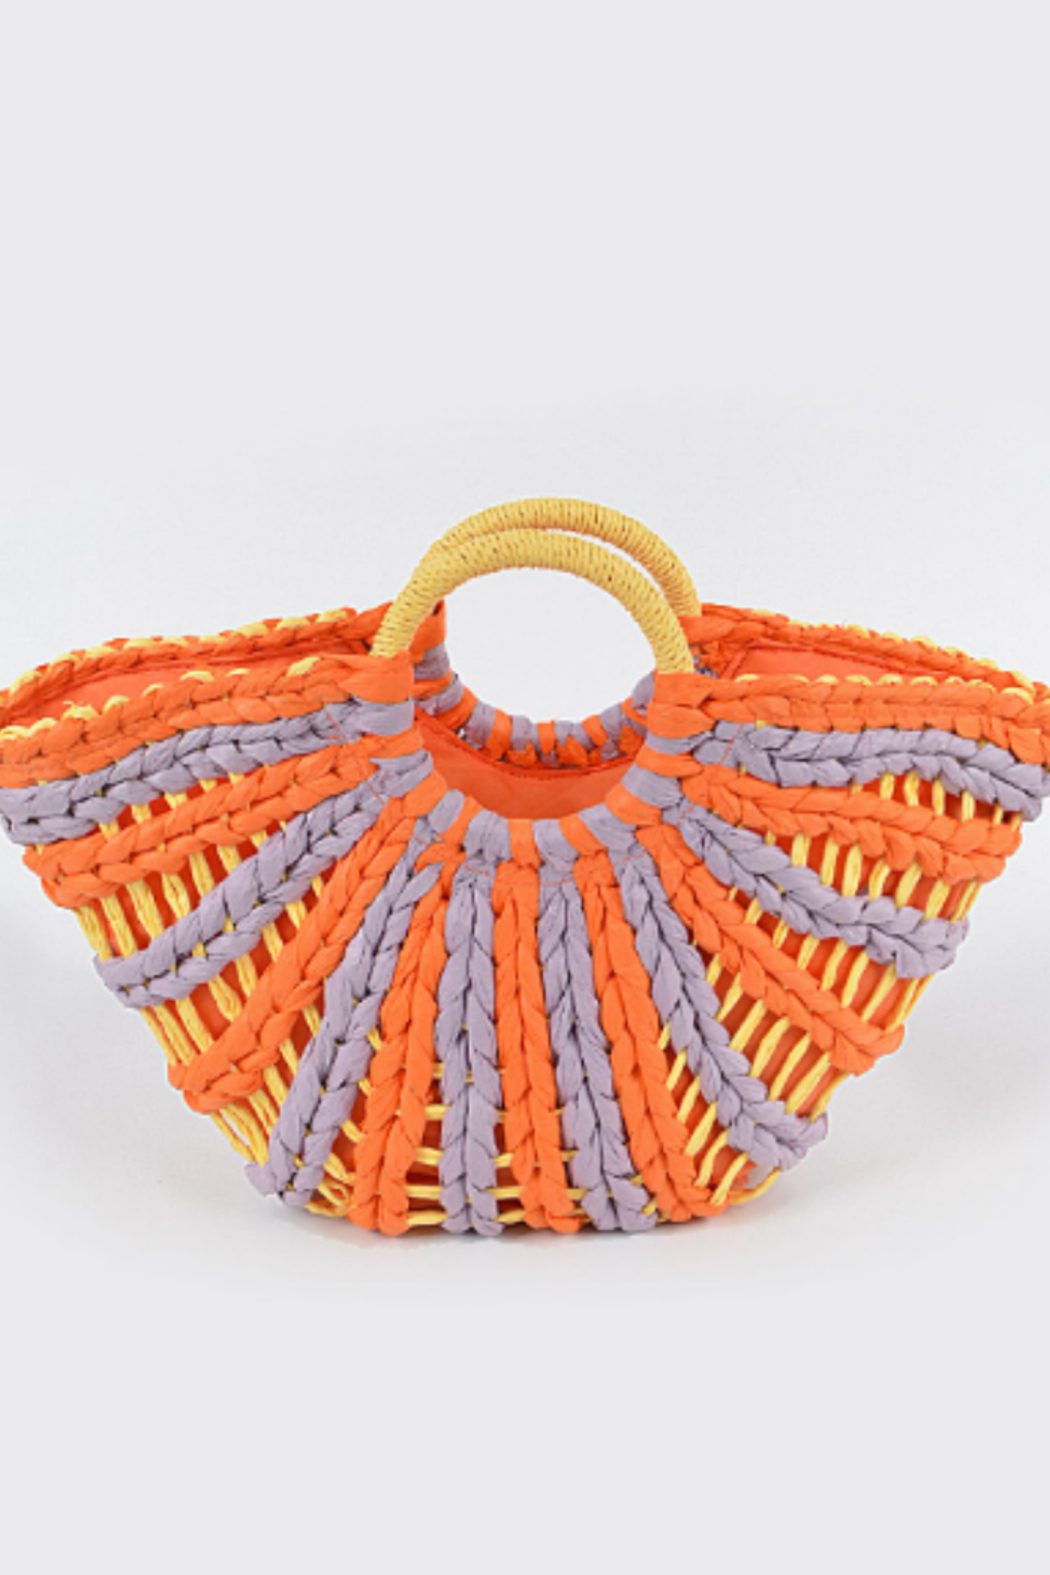 H&D Accessories Swirl Straw Bag - Main Image